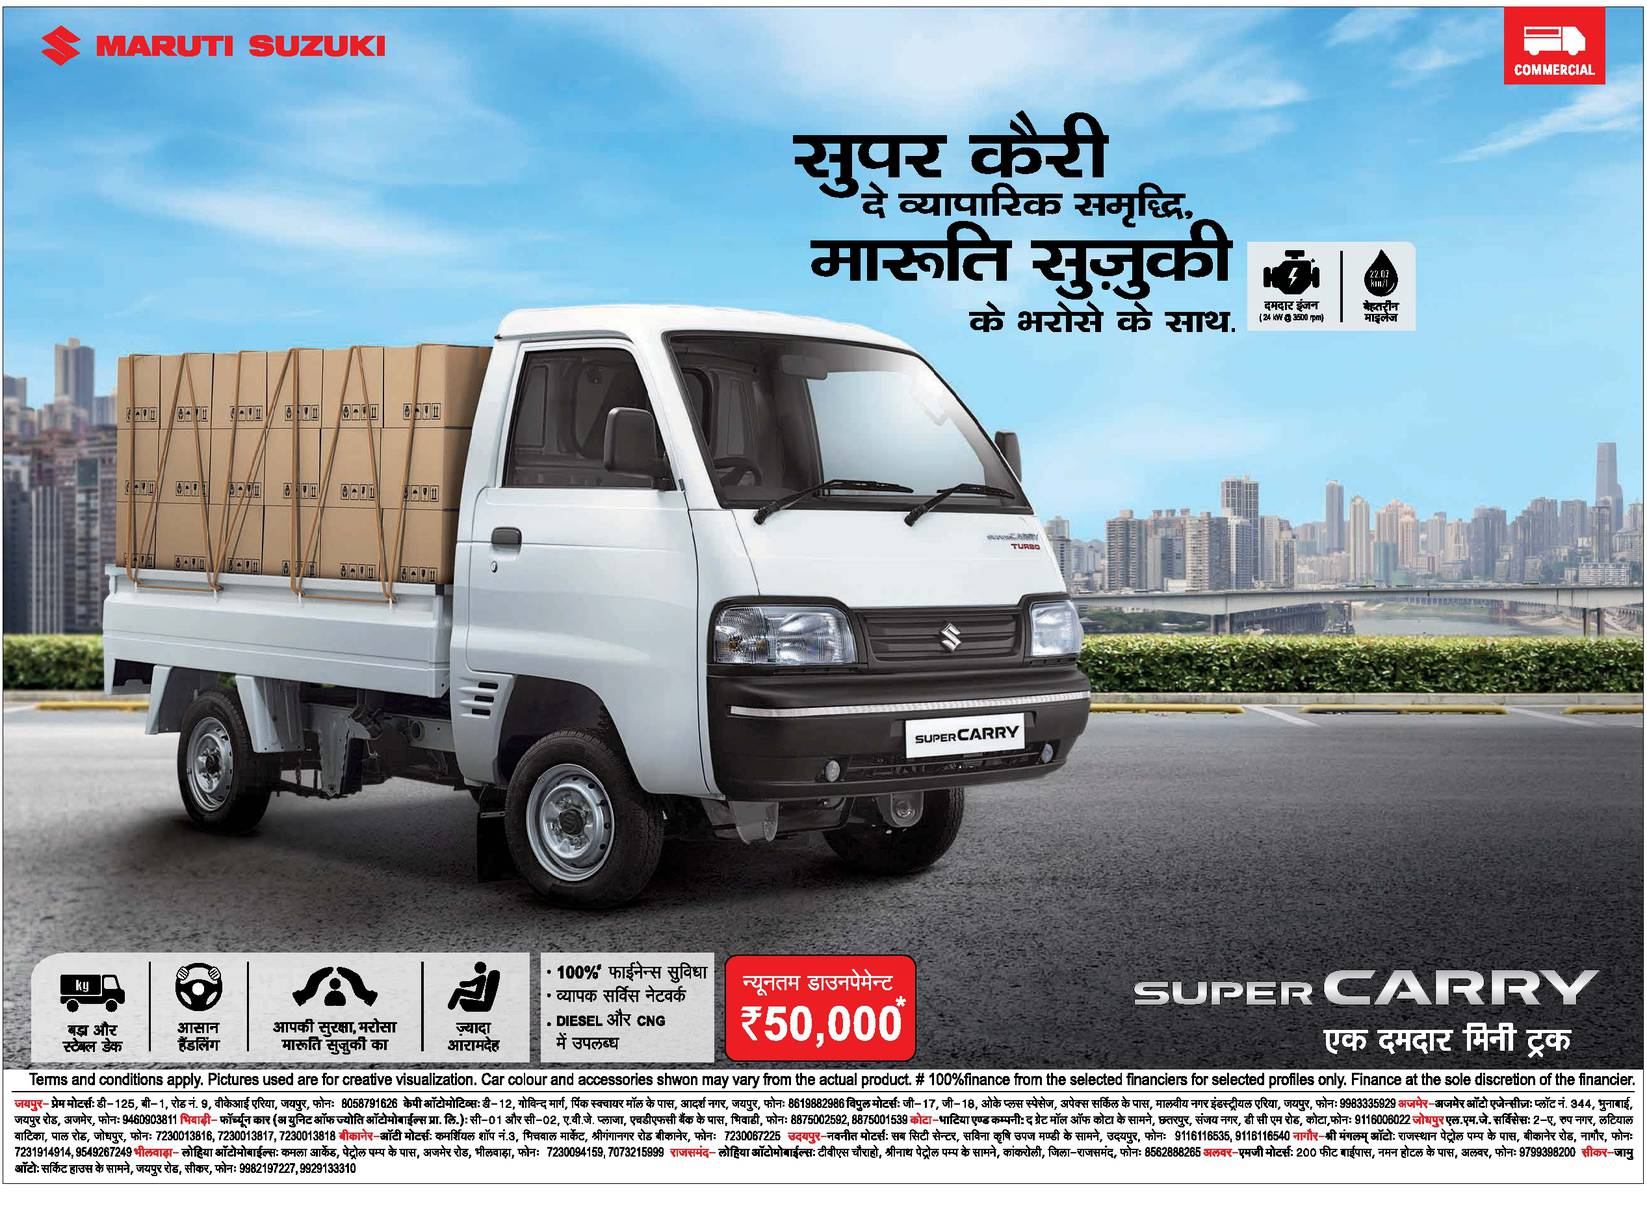 Maruti Suzuki Super Carry Ad Advert Gallery